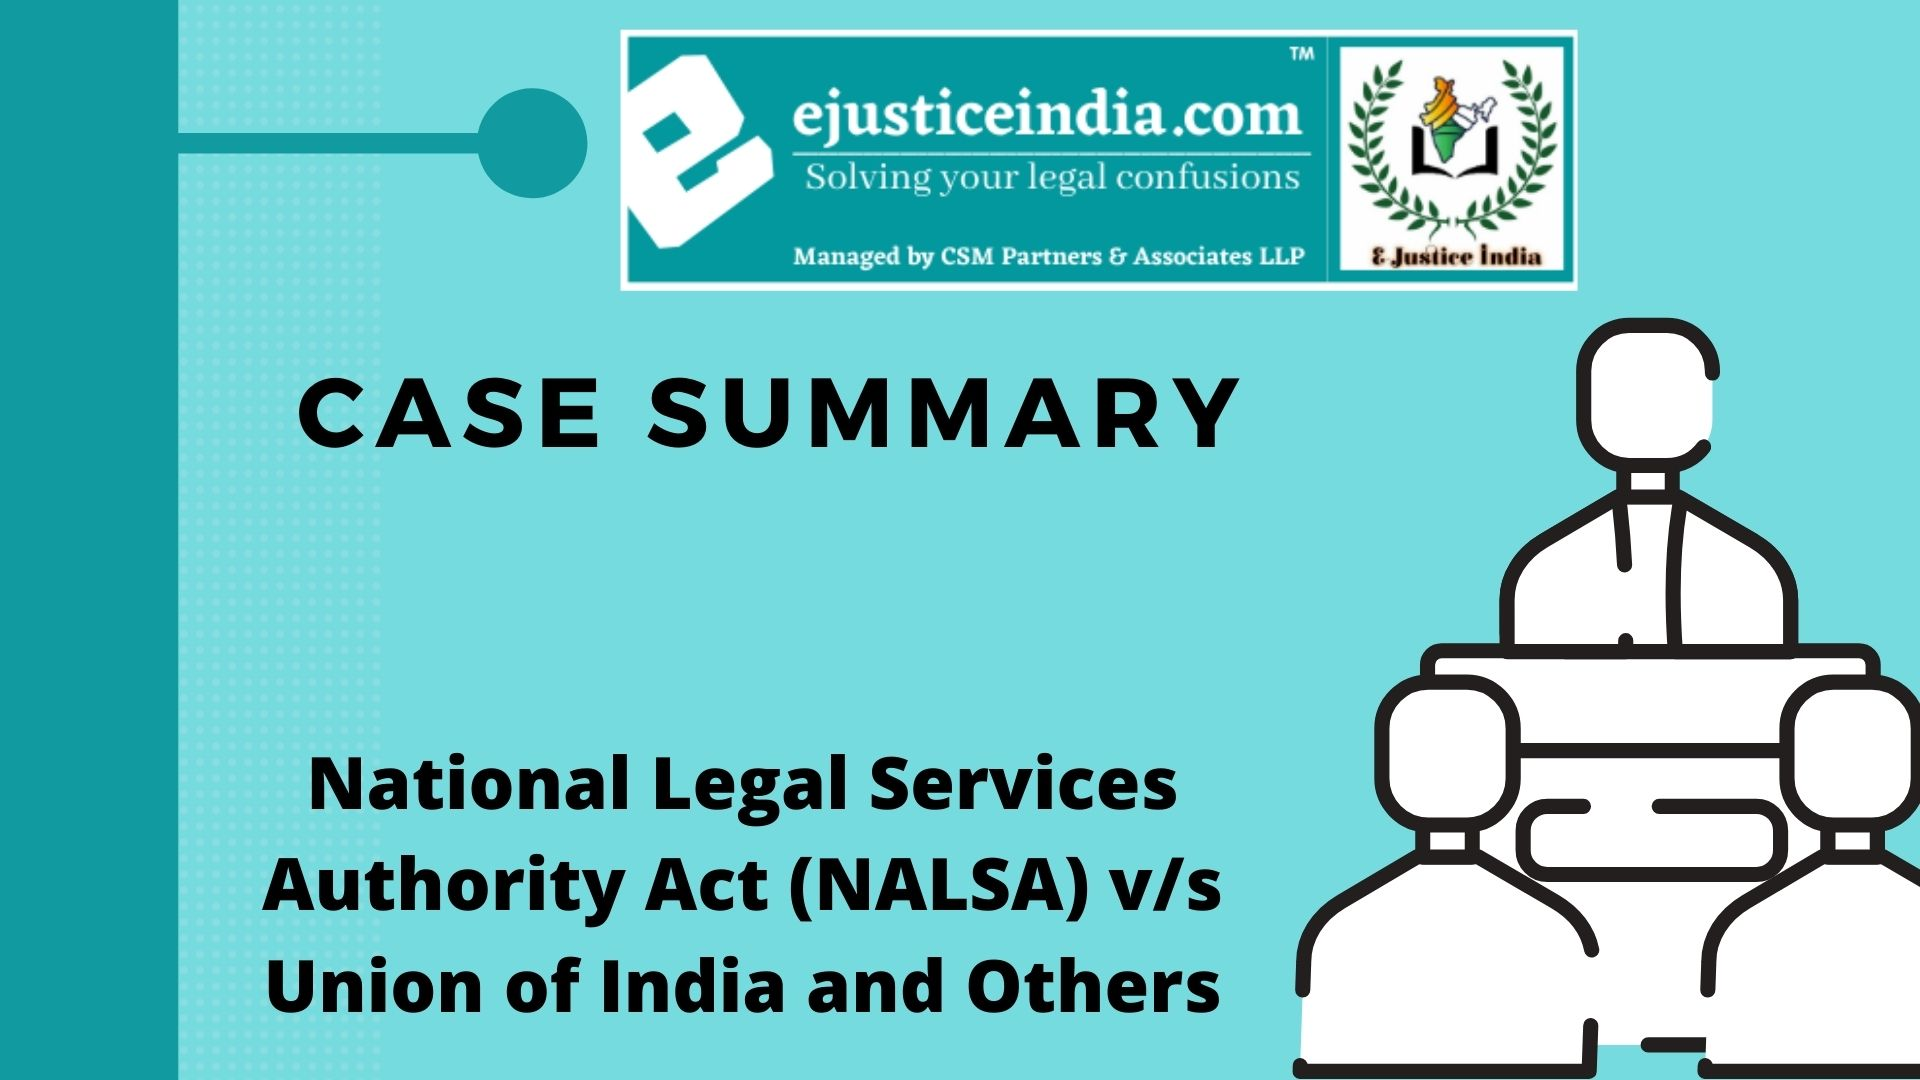 NATIONAL LEGAL SERVICES AUTHORITY ACT (NALSA) V_S UNION OF INDIA AND OTHERS